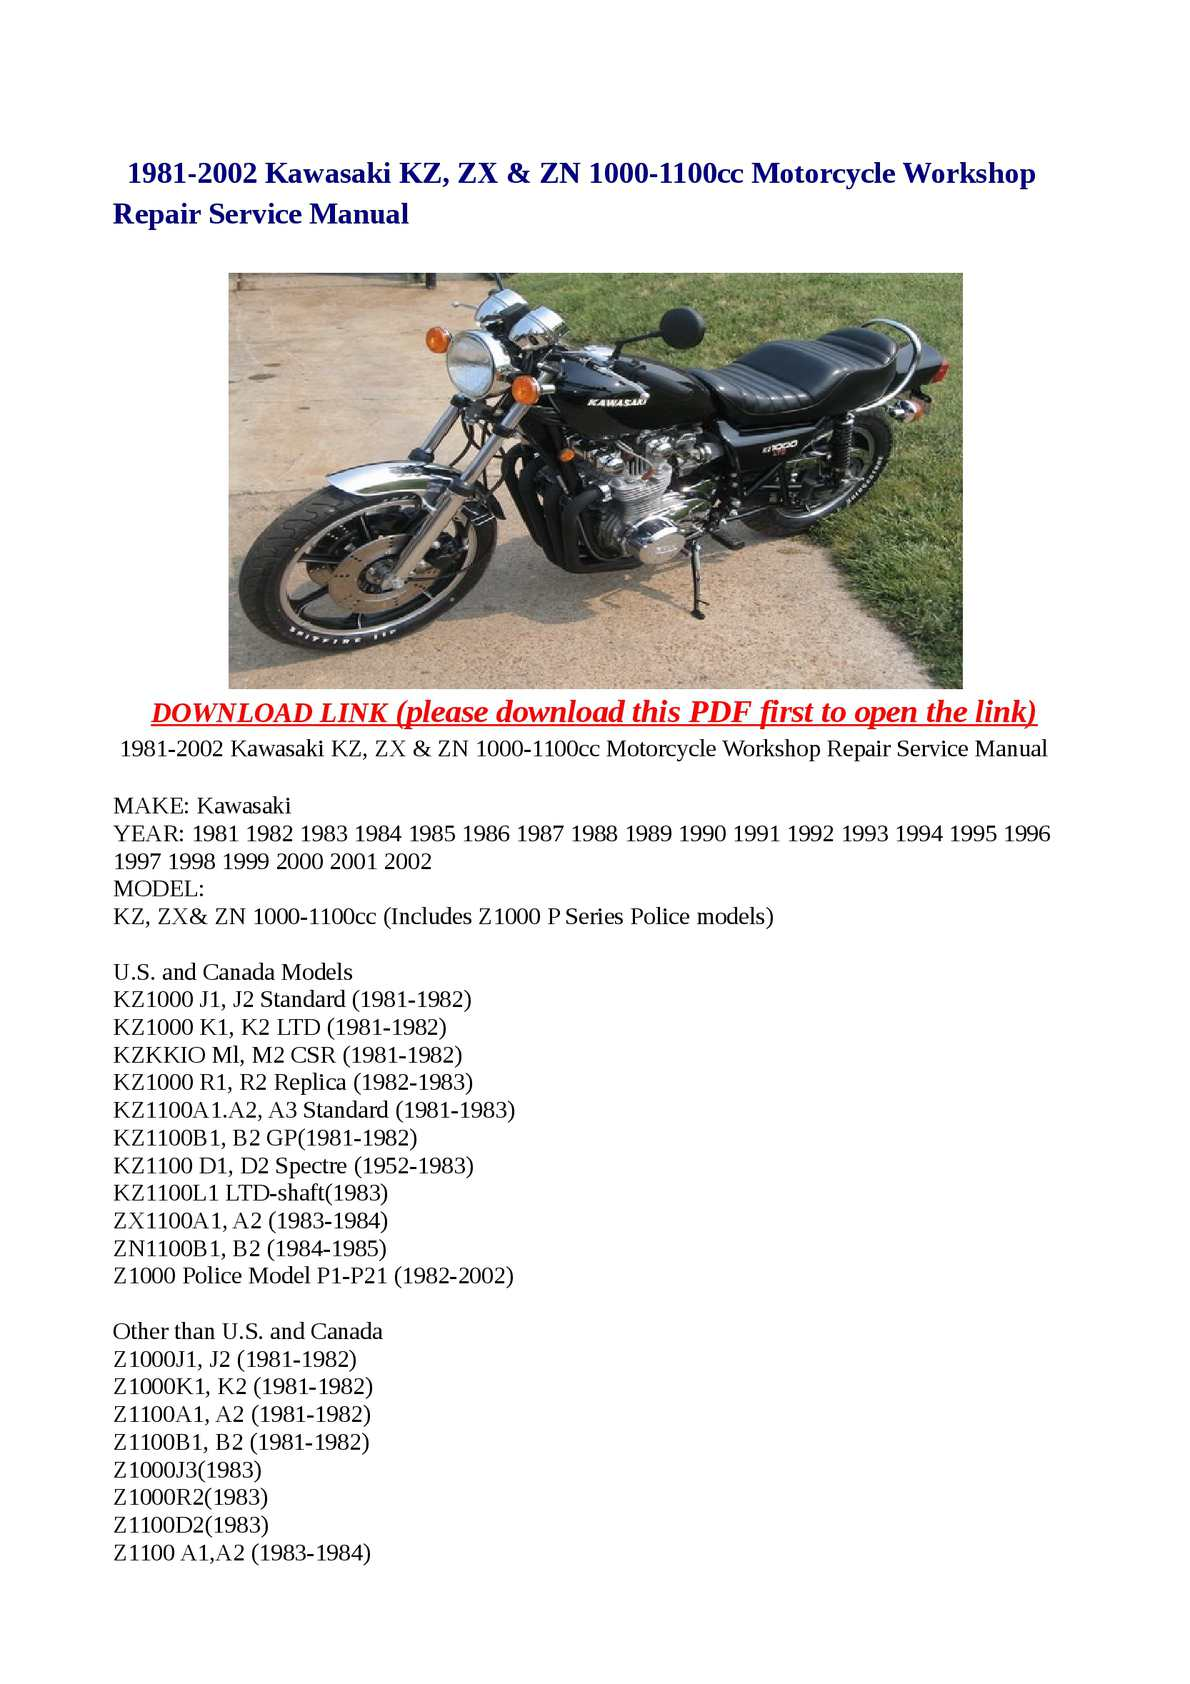 Calaméo - 1981-2002 Kawasaki KZ, ZX & ZN 1000-1100cc Motorcycle Workshop  Repair Service Manual